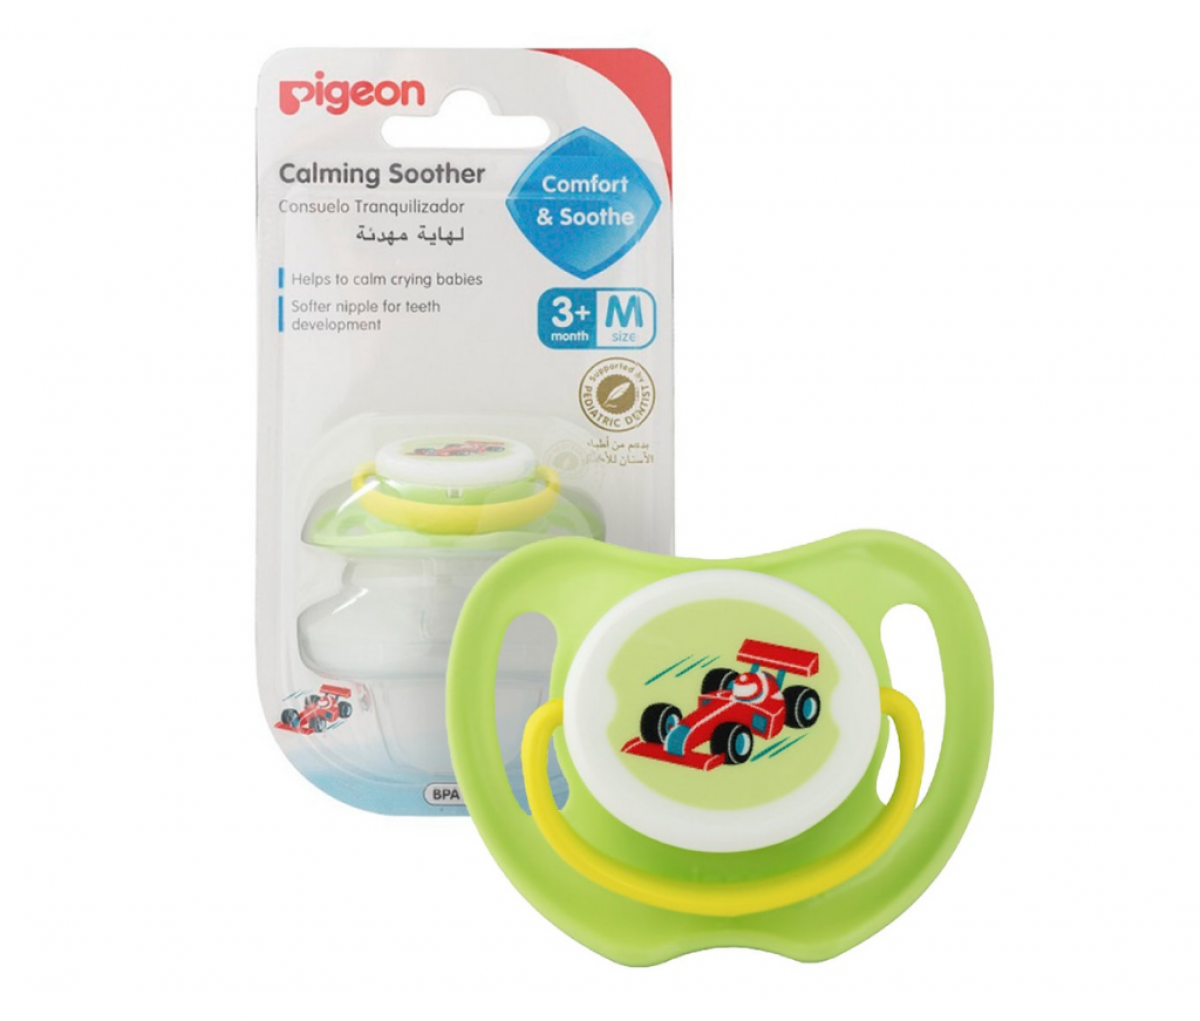 Calming Soother (M) Size Race Car, (ENG/SPN), Blister Pack  [26053E]